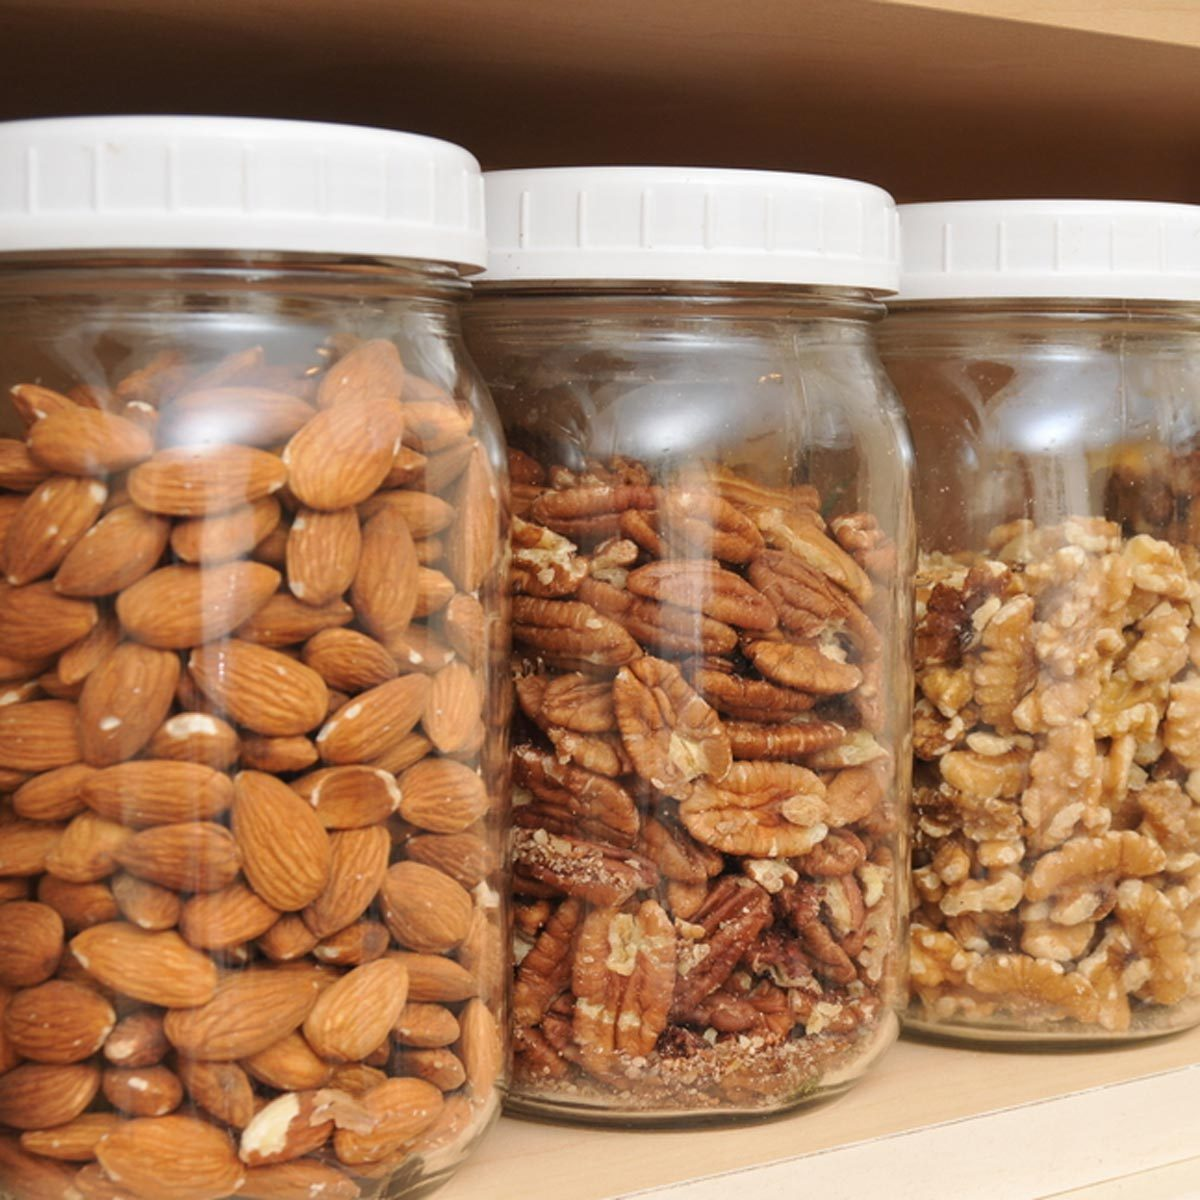 store nuts in reusable jars